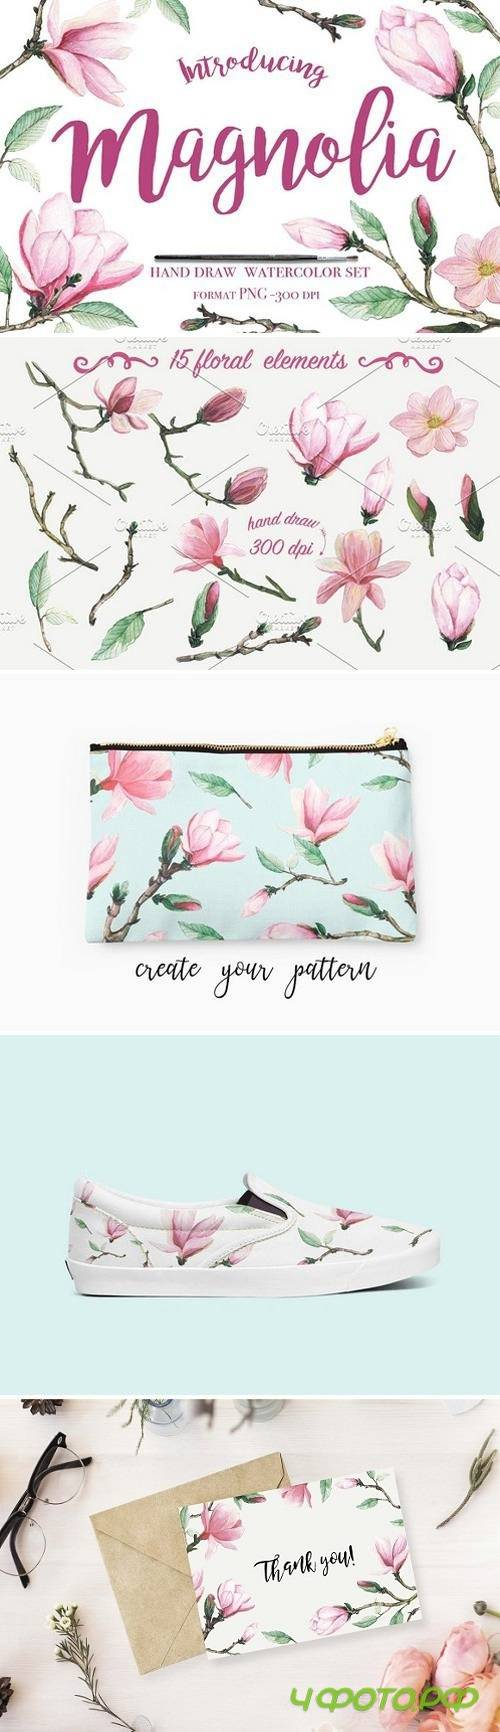 Magnolia watercolor set 1621646